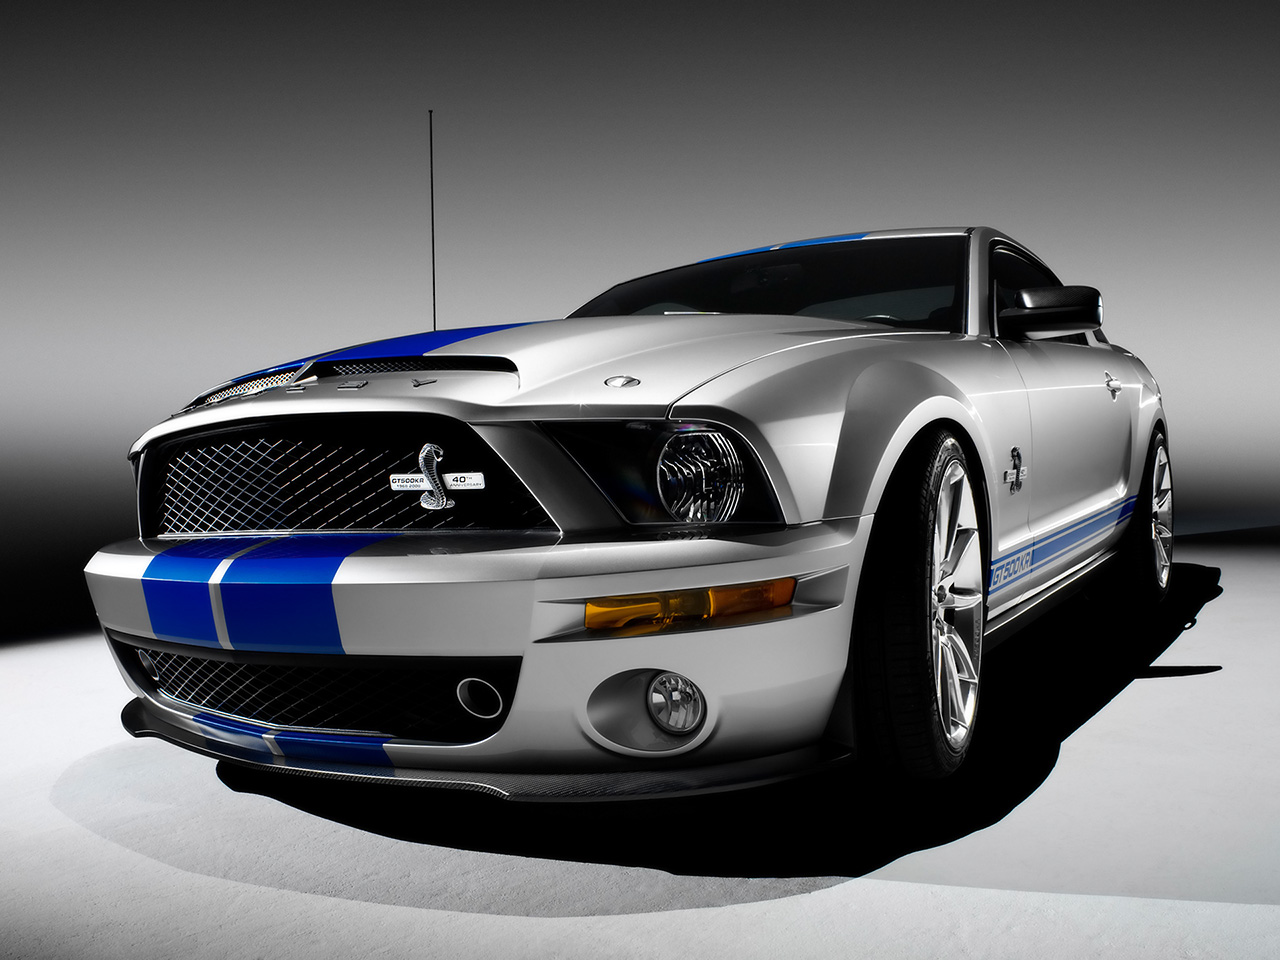 Ford Mustang Shelby Gt500 Pictures Beautiful Cool Cars HD Wallpapers Download free images and photos [musssic.tk]